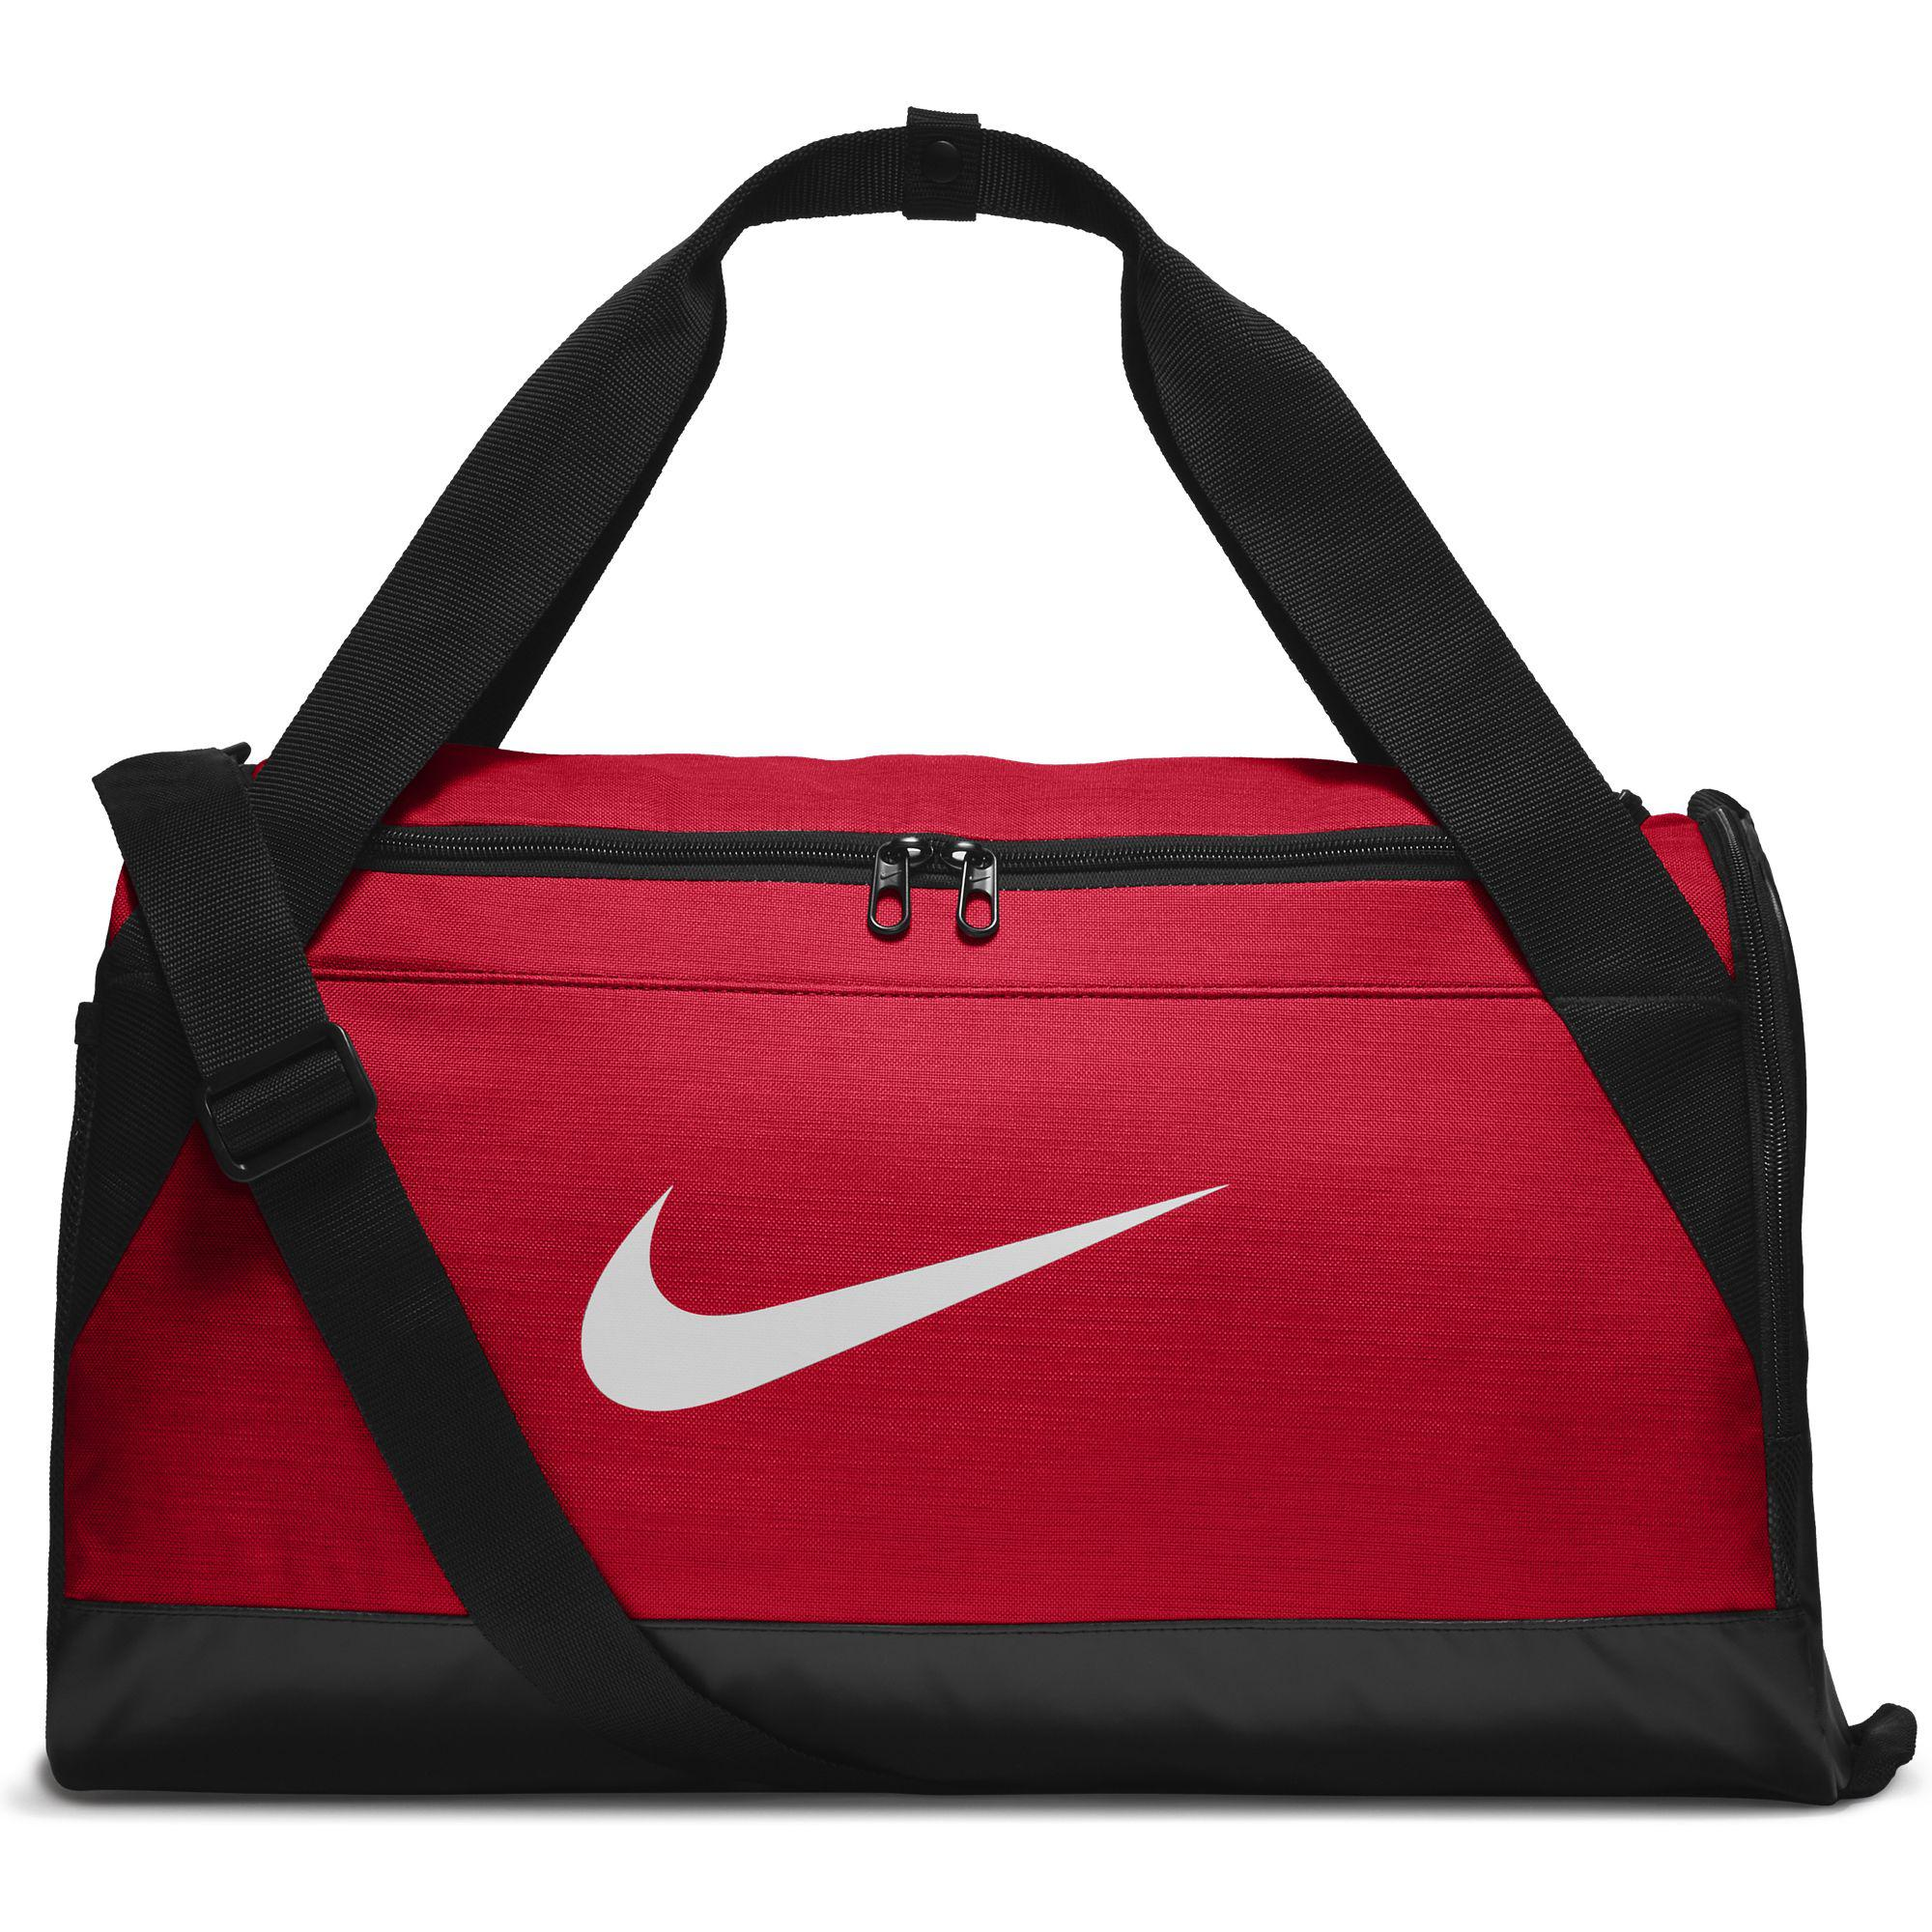 3f7150f8f522 Nike Brasilia Small Training Duffel Bag - University Red Black White -  Tennisnuts.com